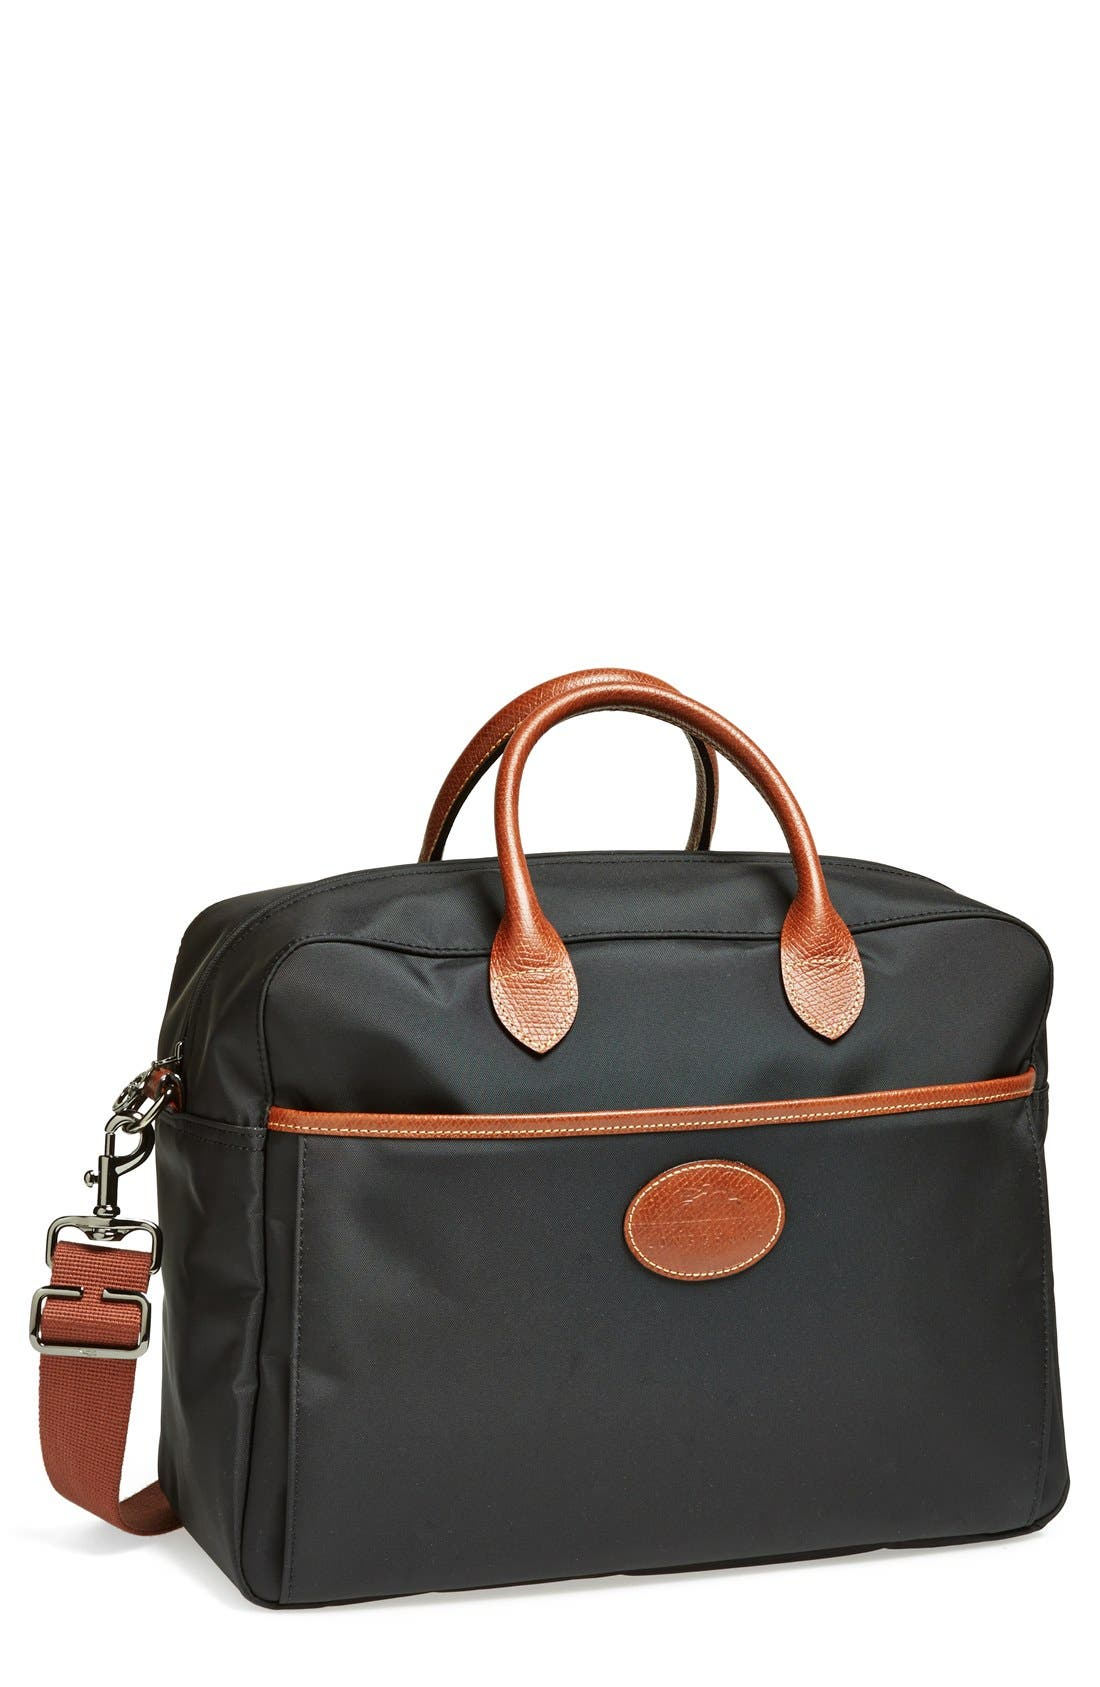 Main Image - Longchamp 'Le Pliage' Travel Bag (14 Inch)